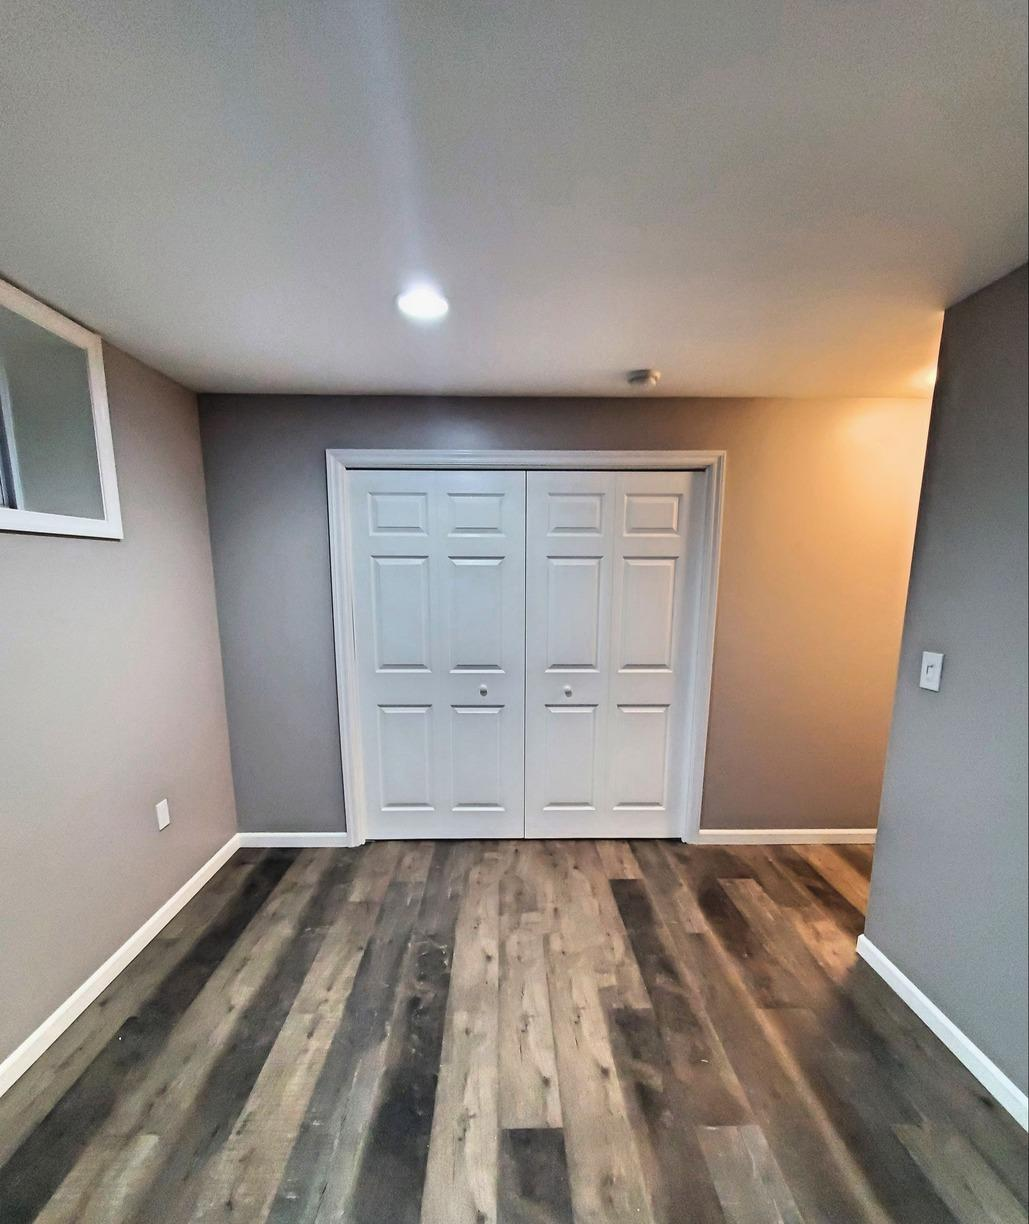 New Guest Room in North Royalton, OH - After Photo